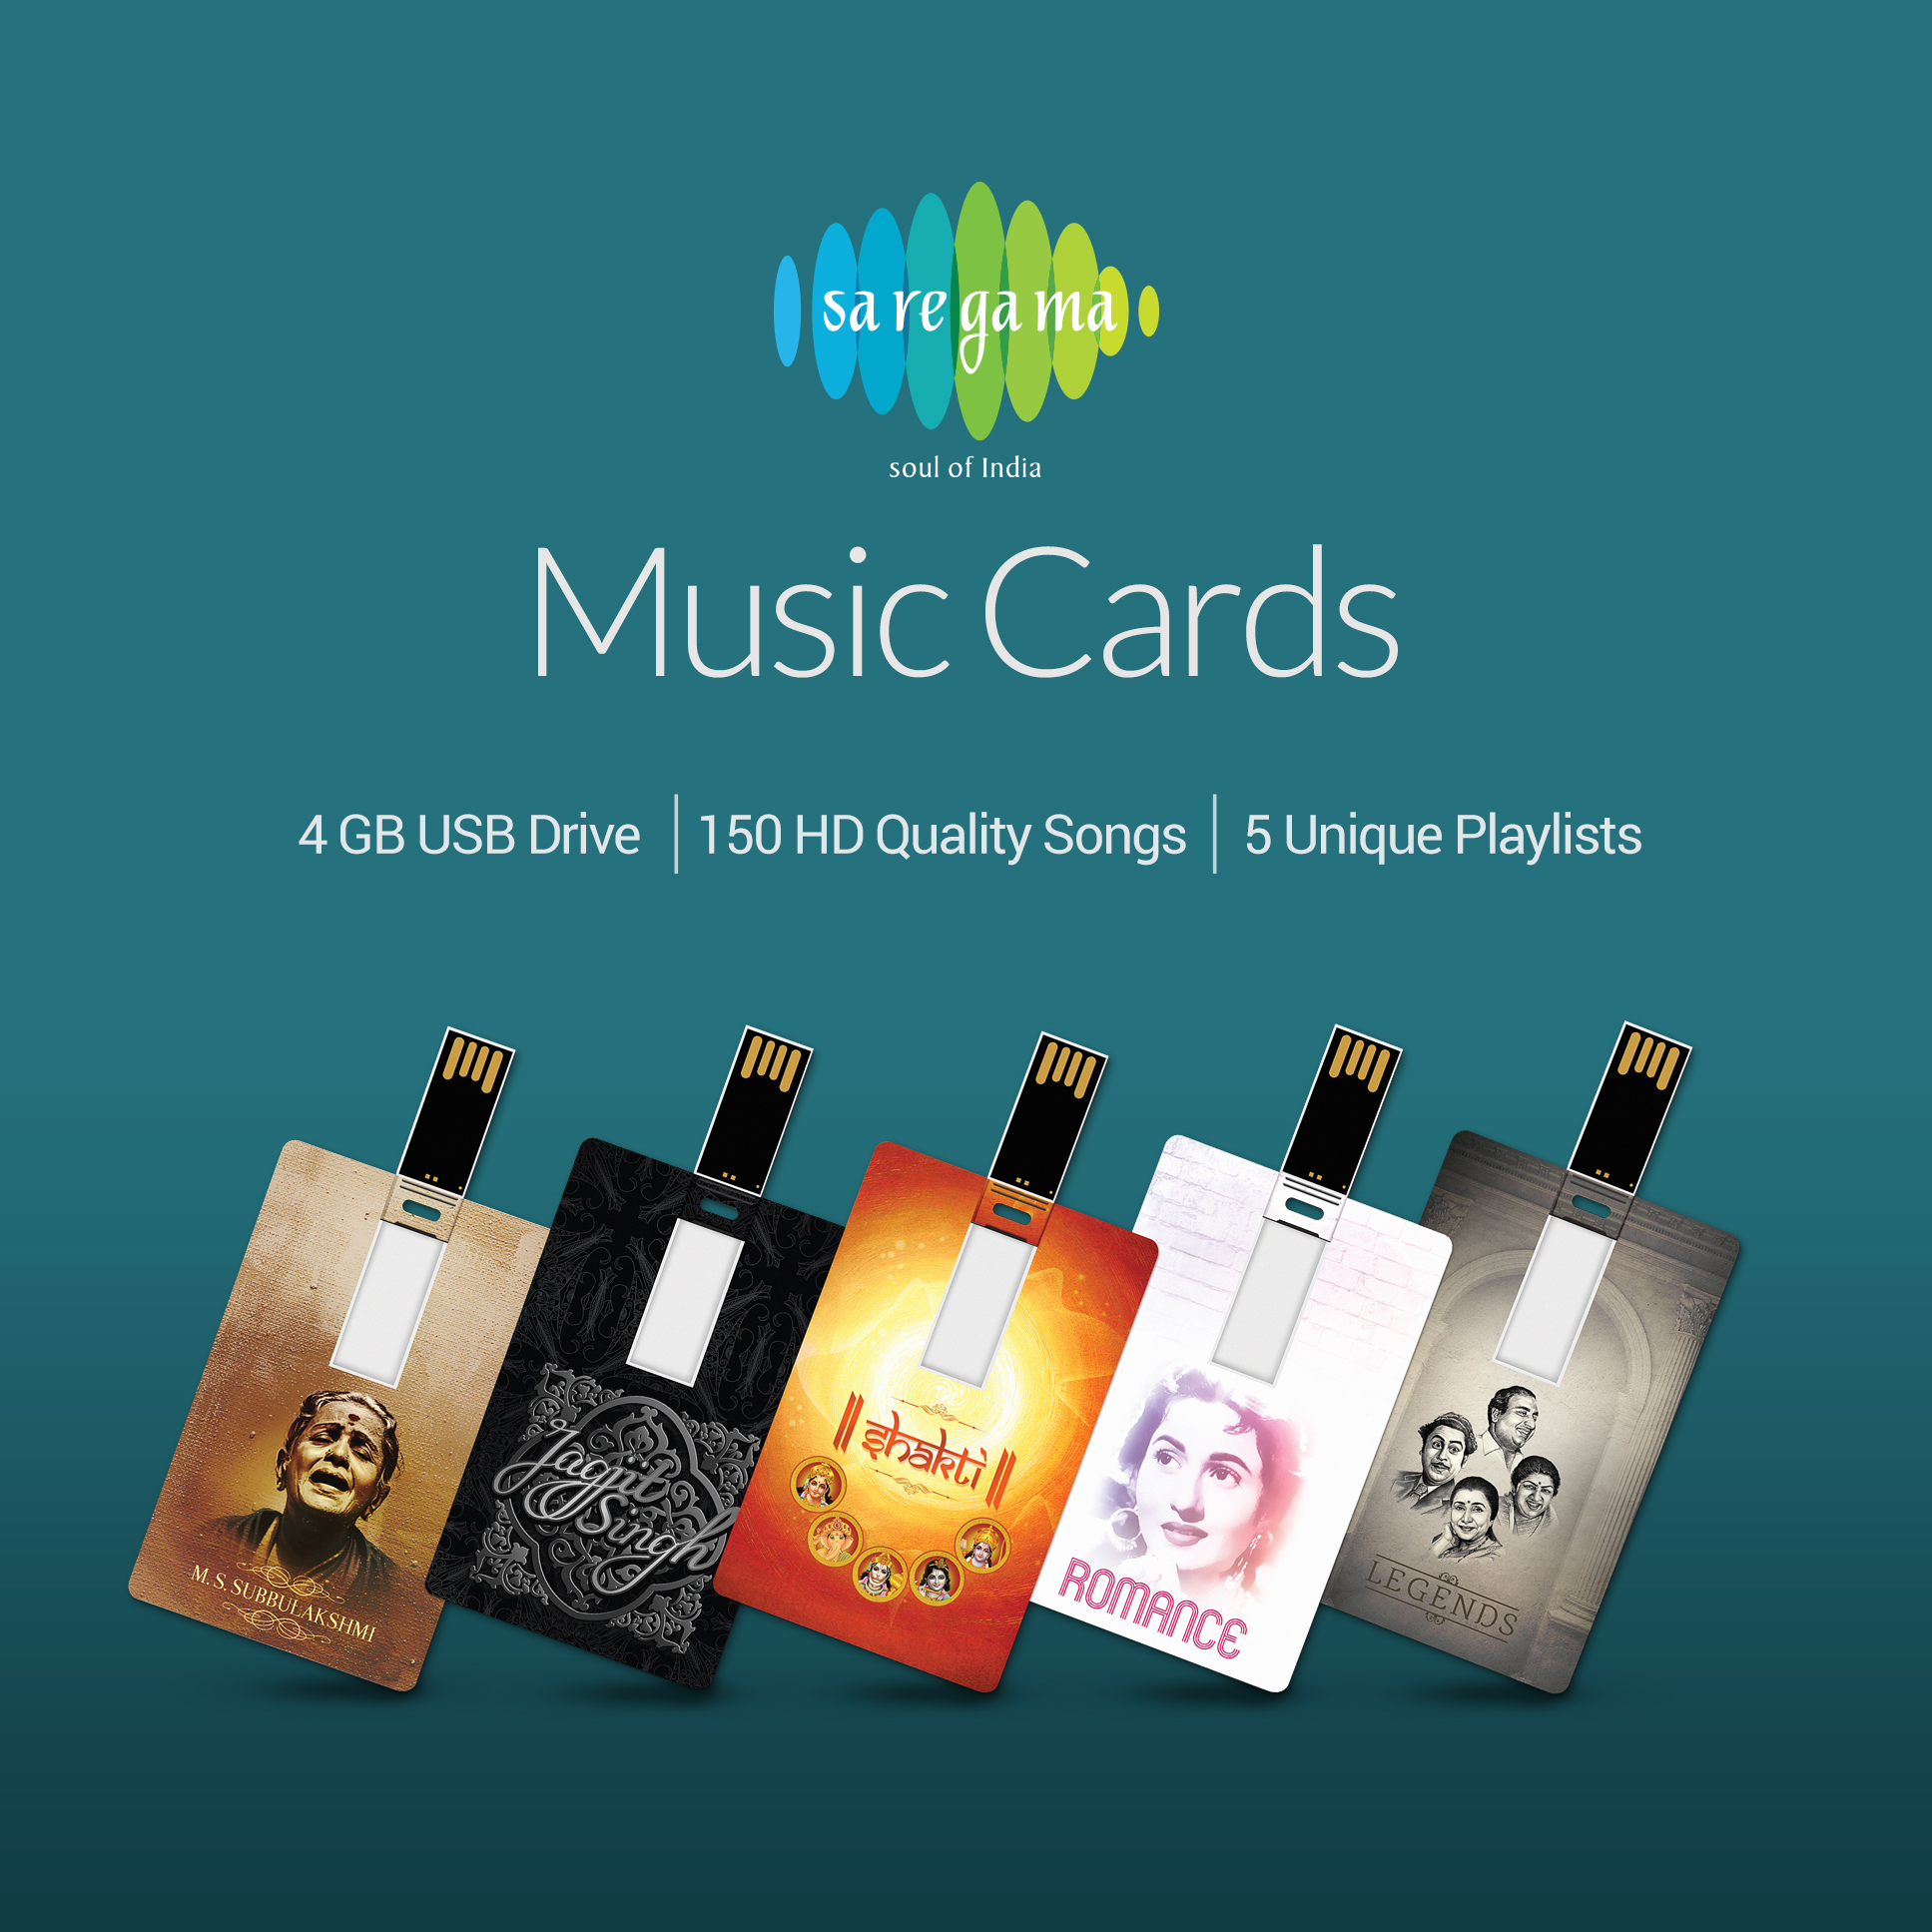 Saregama Launches MUSIC CARDS – The Perfect Gift For Your Loved Ones